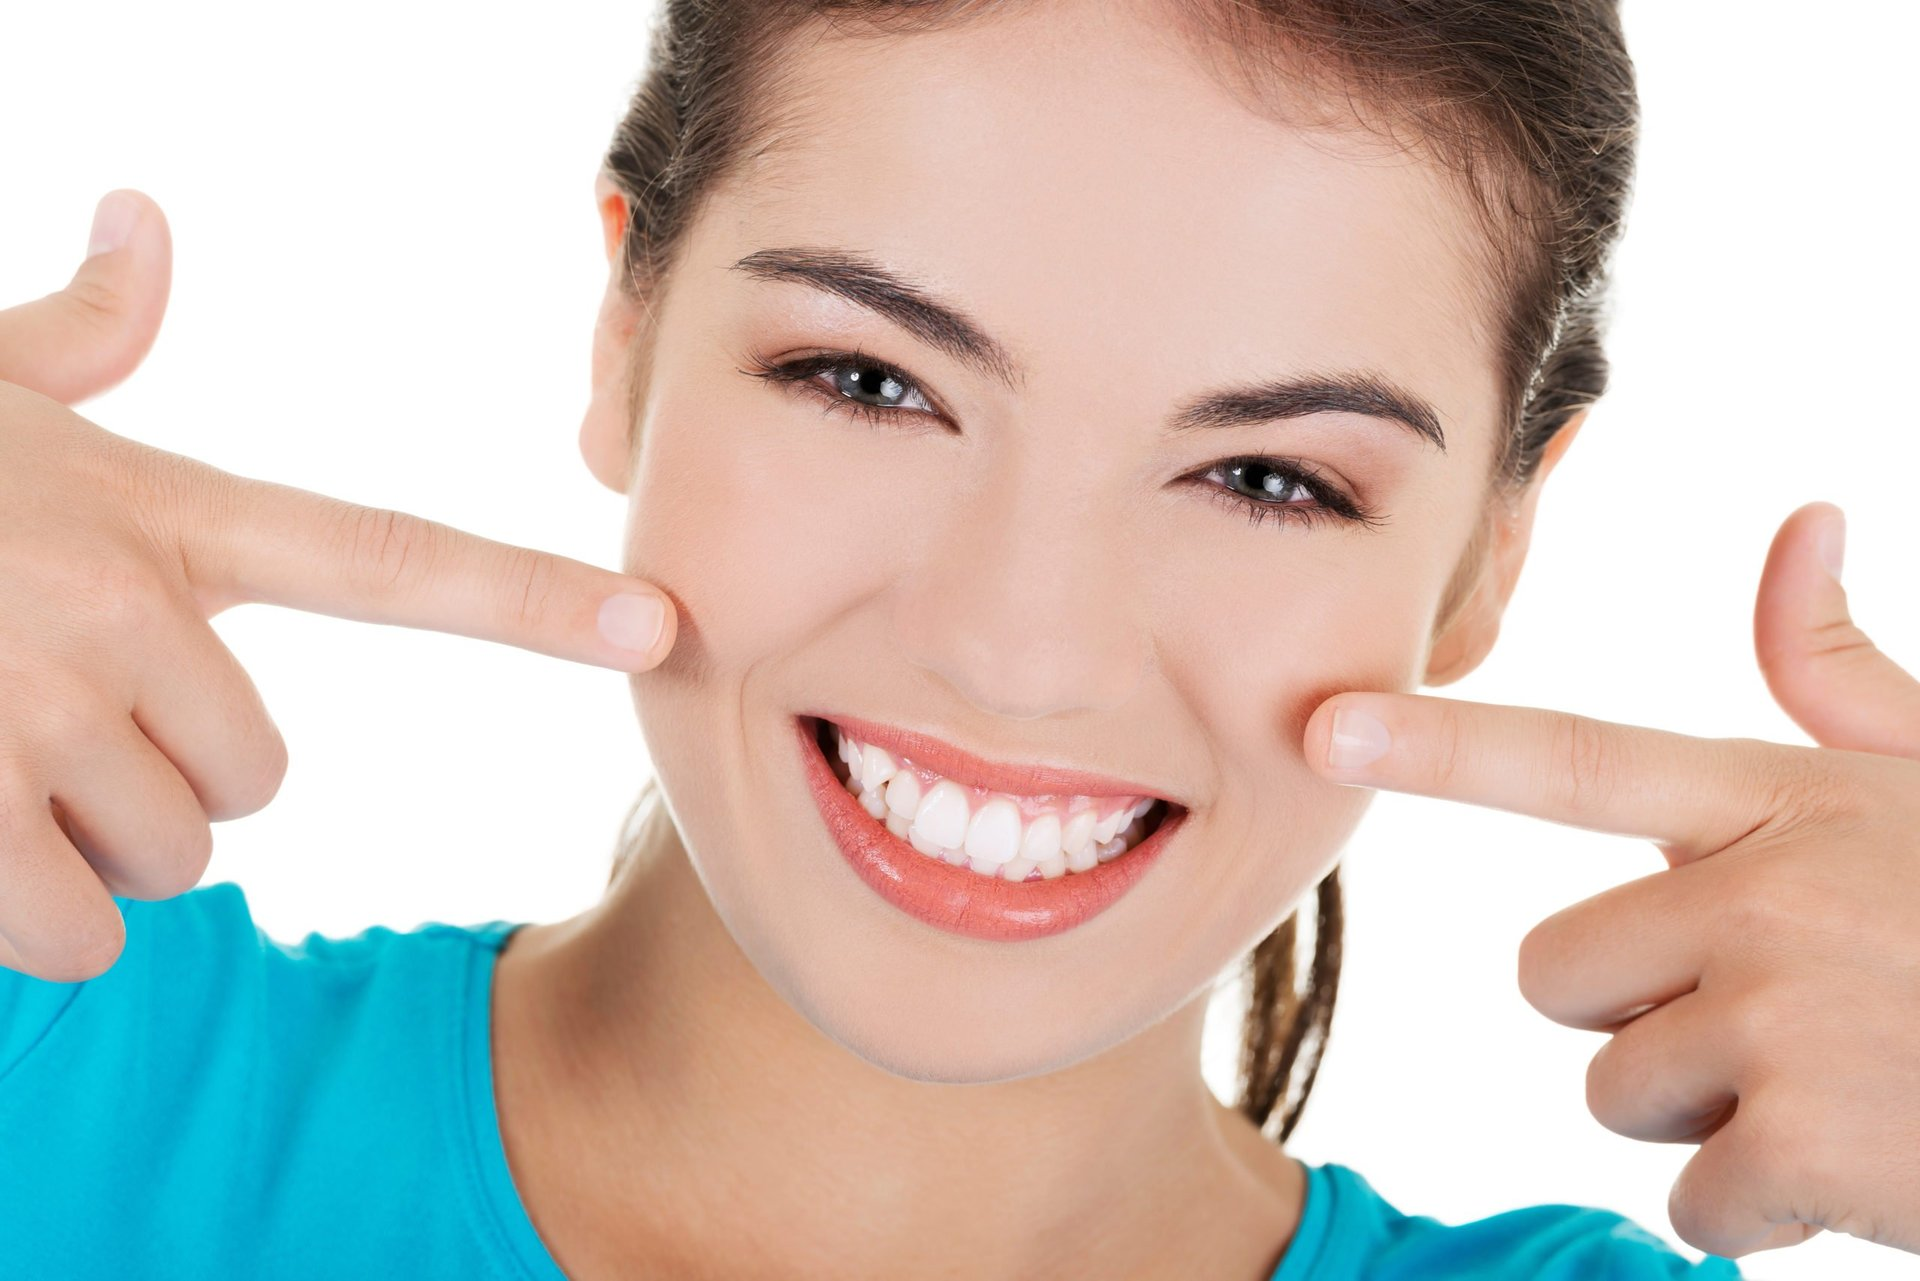 Smiling woman pointing to her teeth